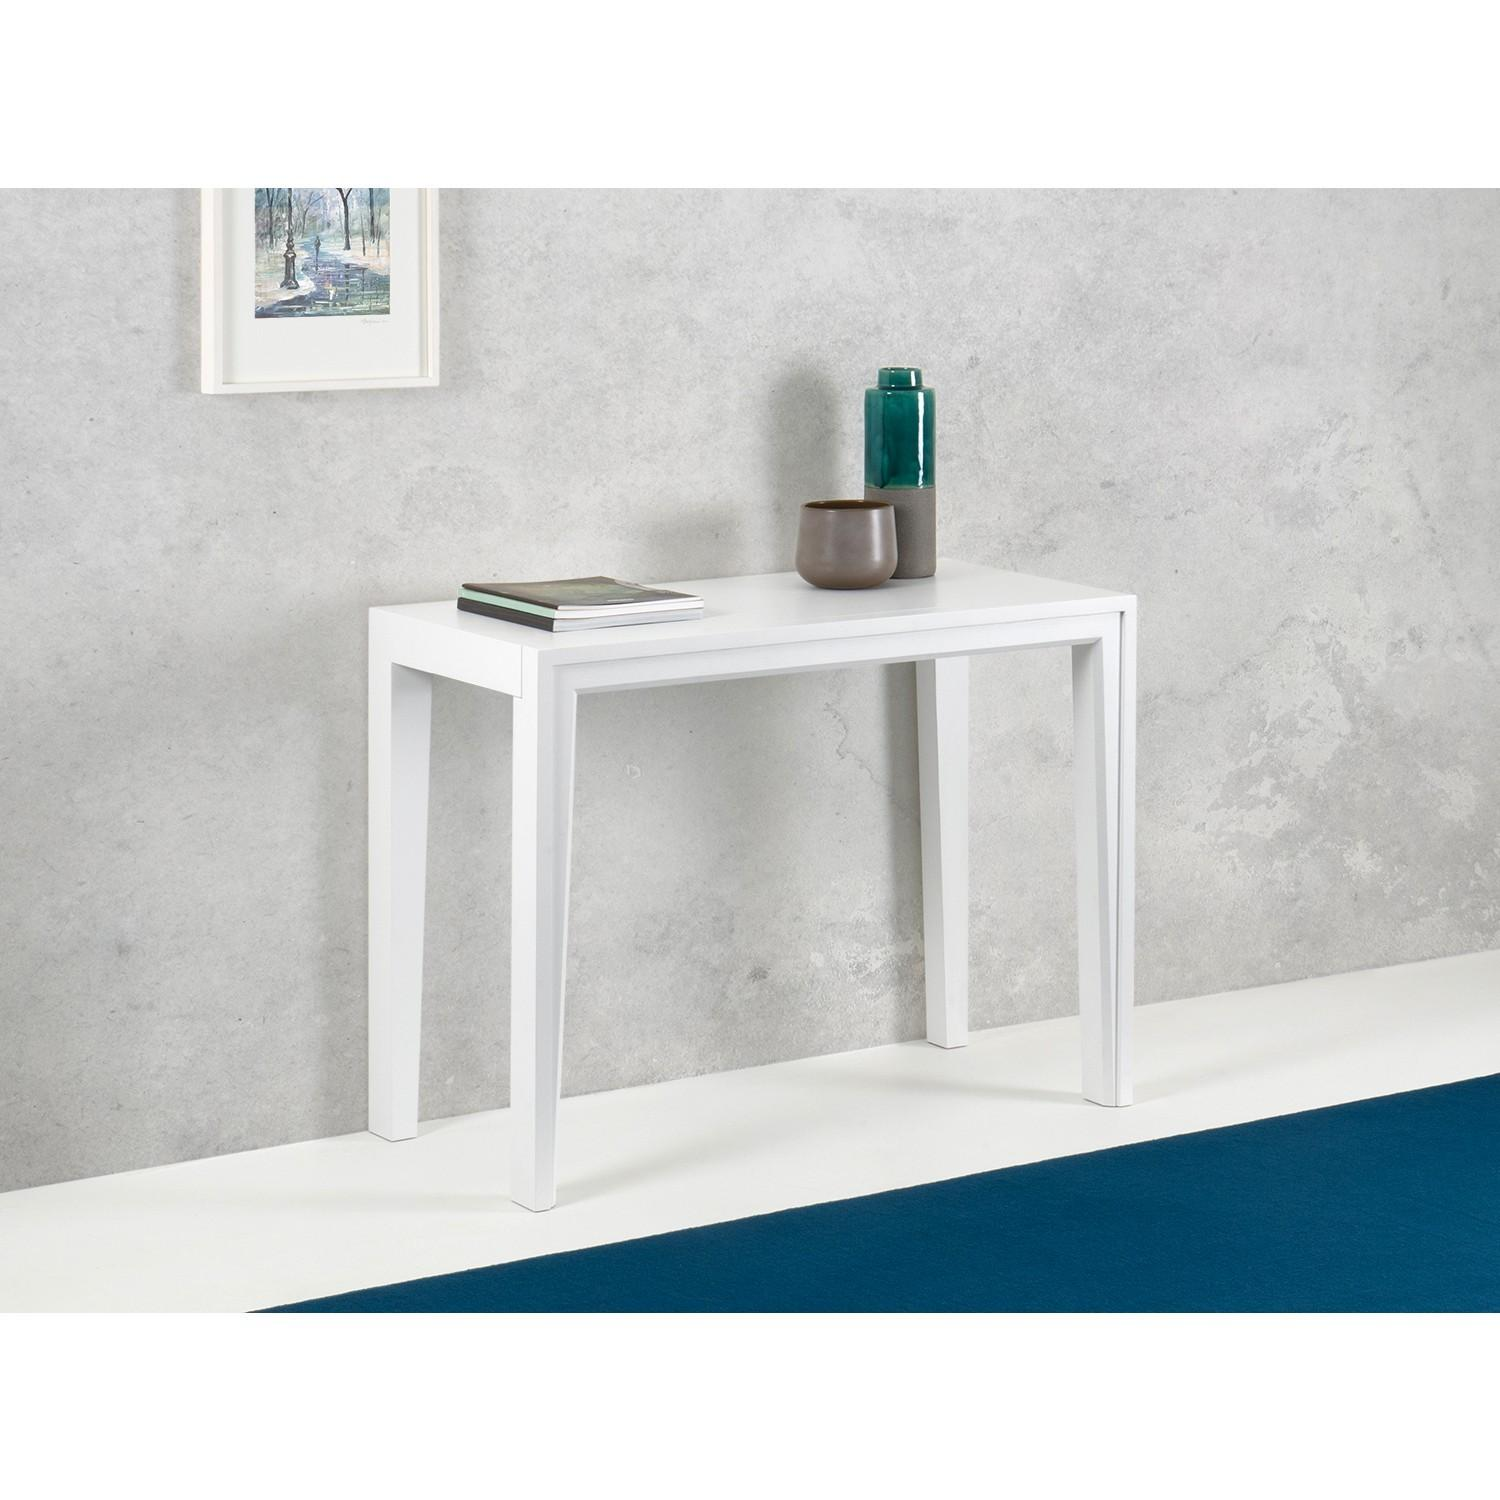 Margot Space Saving Wooden Hall Table Arredaclick